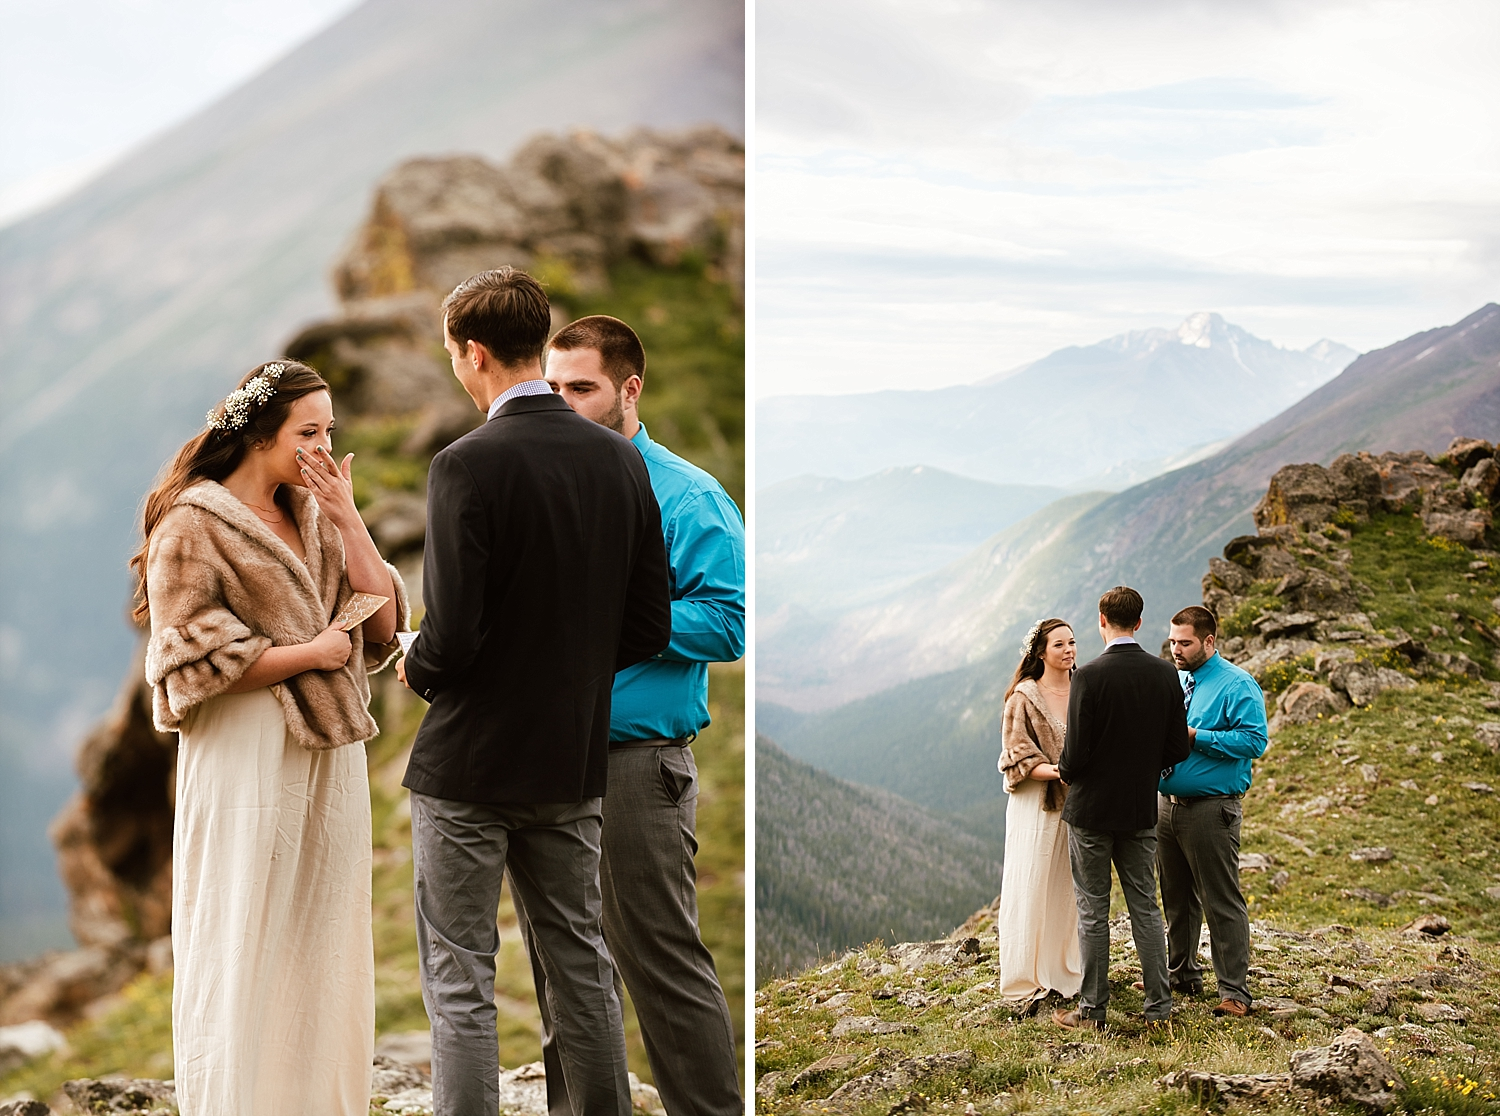 I've always dreamed of a mountaintop wedding like Jessica and Edward's! Can;t wait for my own intimate elopement in Estes Park! | Intimate mountaintop elopement photos by Rocky Mountain National Park wedding photographer, Maddie Mae.